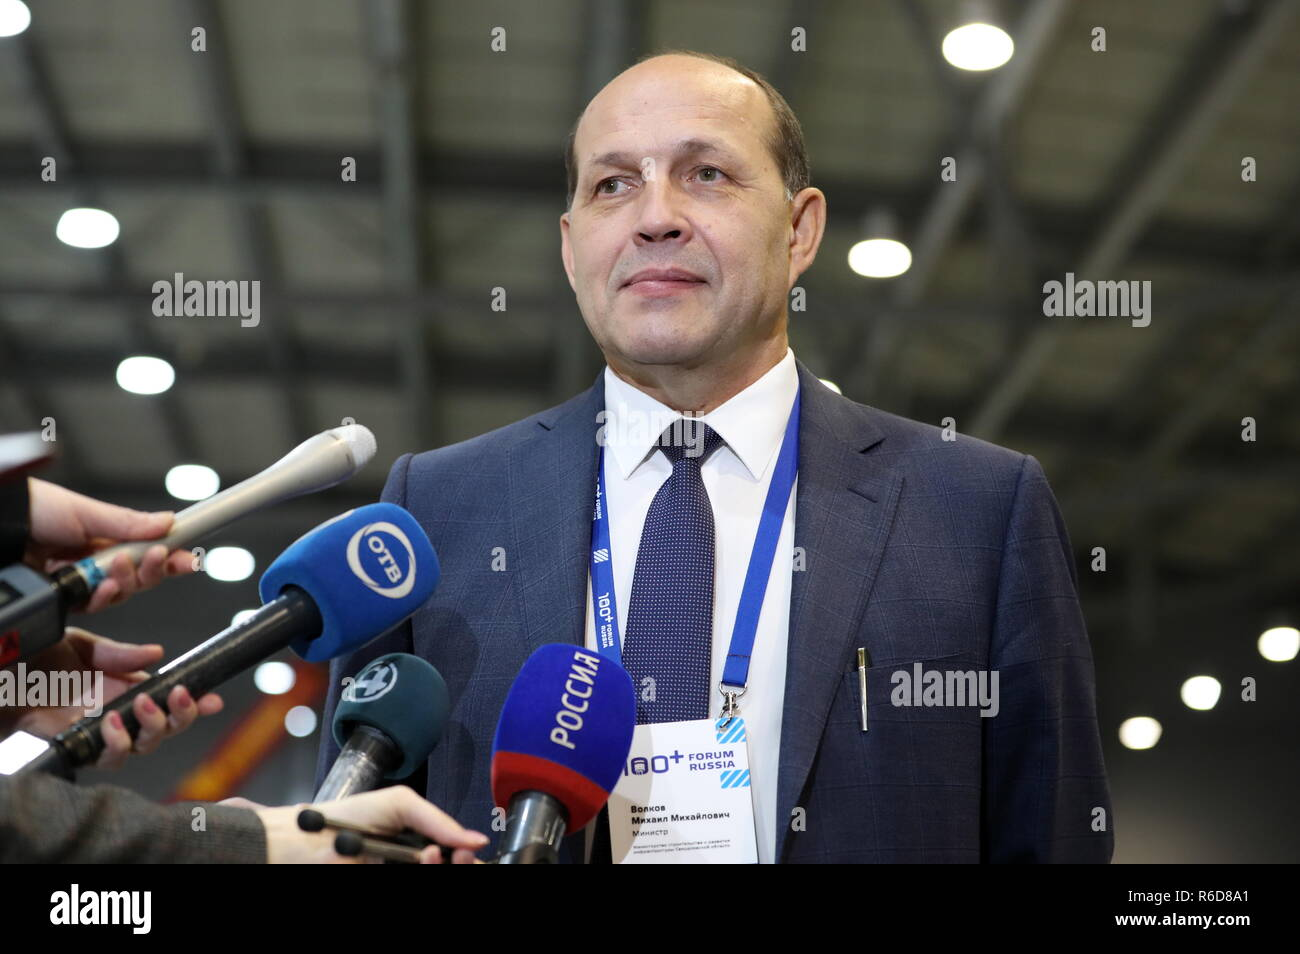 Yekaterinburg, Russia. 05th Dec, 2018. YEKATERINBURG, RUSSIA - DECEMBER 5, 2018: Mikhail Volkov, minister of construction and infrastructure development of the Sverdlovsk Region, attends the 100  Technologies International Forum for High-rise and Special Construction at the Yekaterinburg-Expo Exhibition Center. Donat Sorokin/TASS Credit: ITAR-TASS News Agency/Alamy Live News Stock Photo